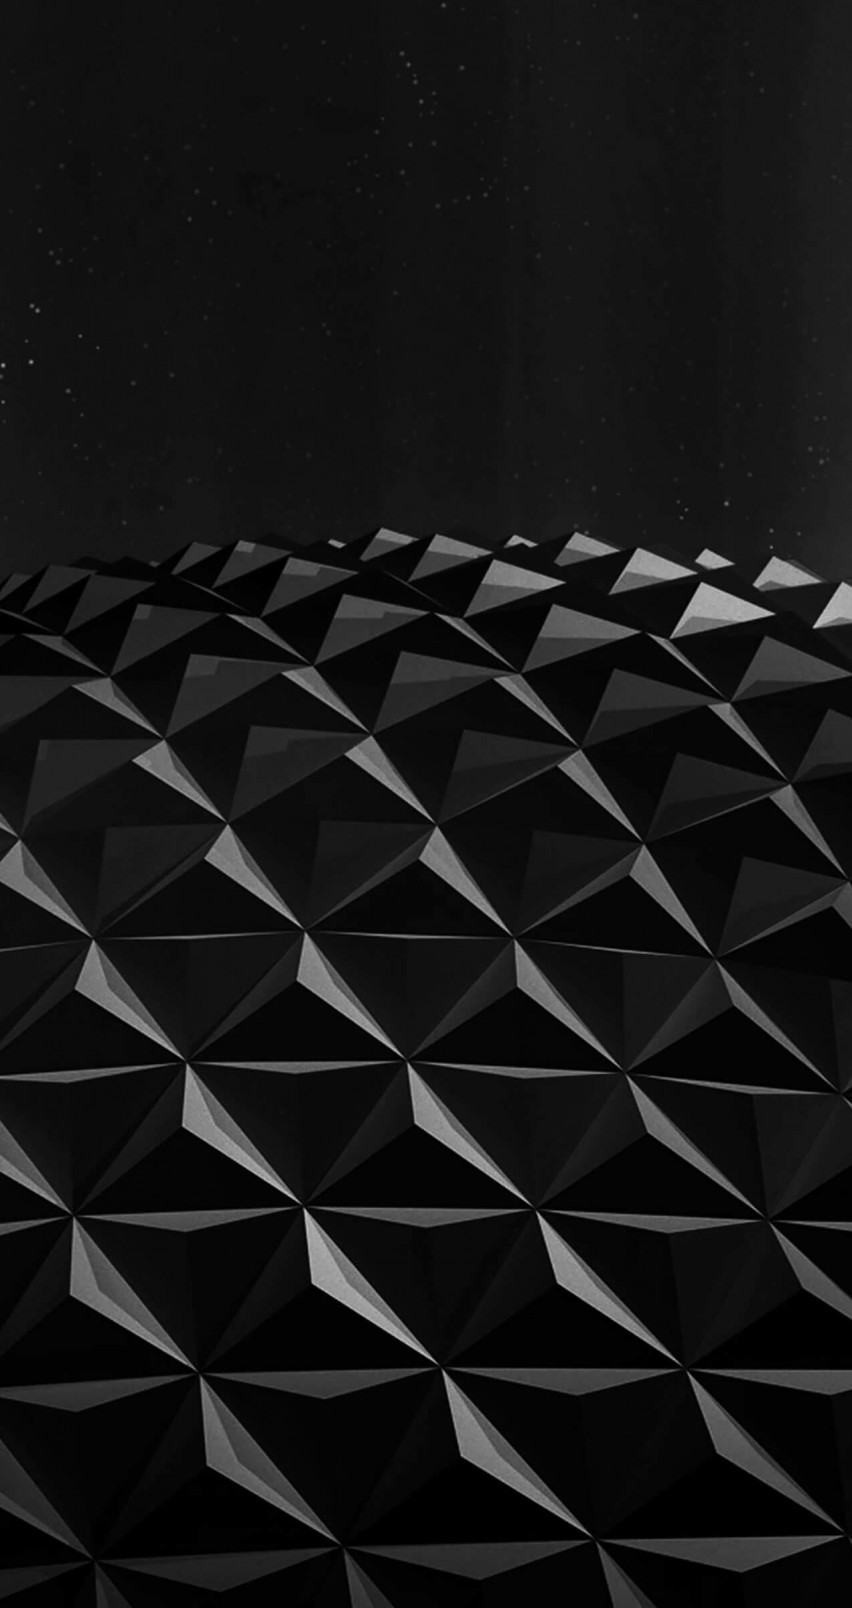 Black Polygon Planet Wallpaper for Apple iPhone 6 / 6s